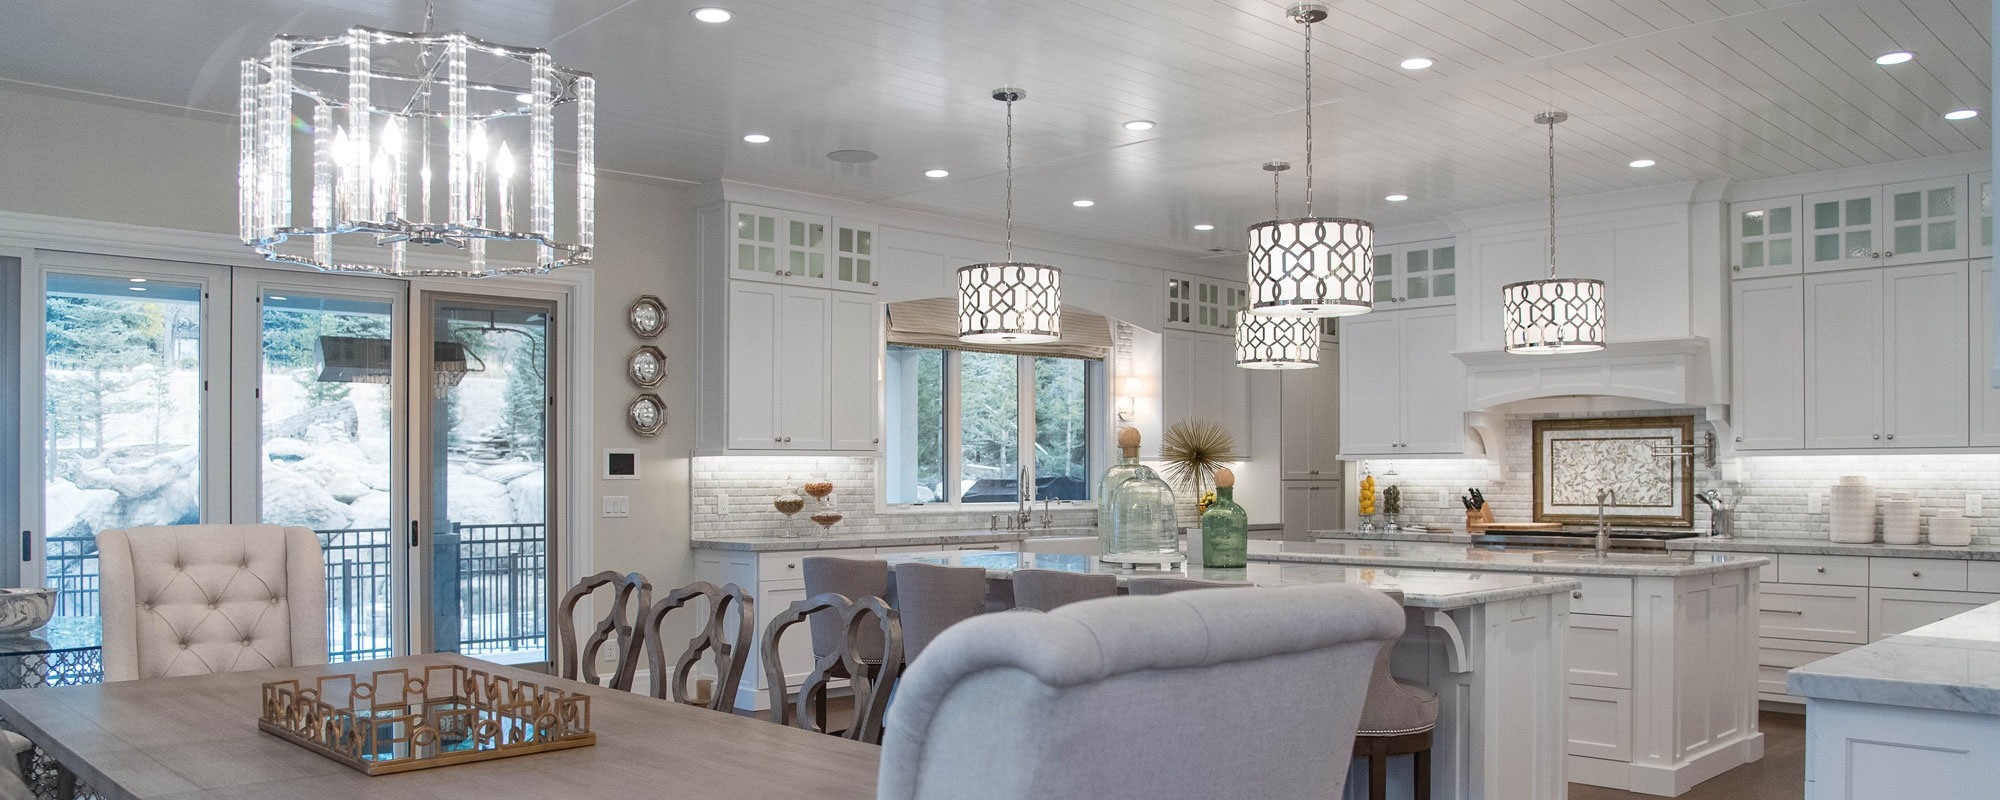 How to design kitchen lighting Ideas Kitchen Prevnext Kitchen Kitchen